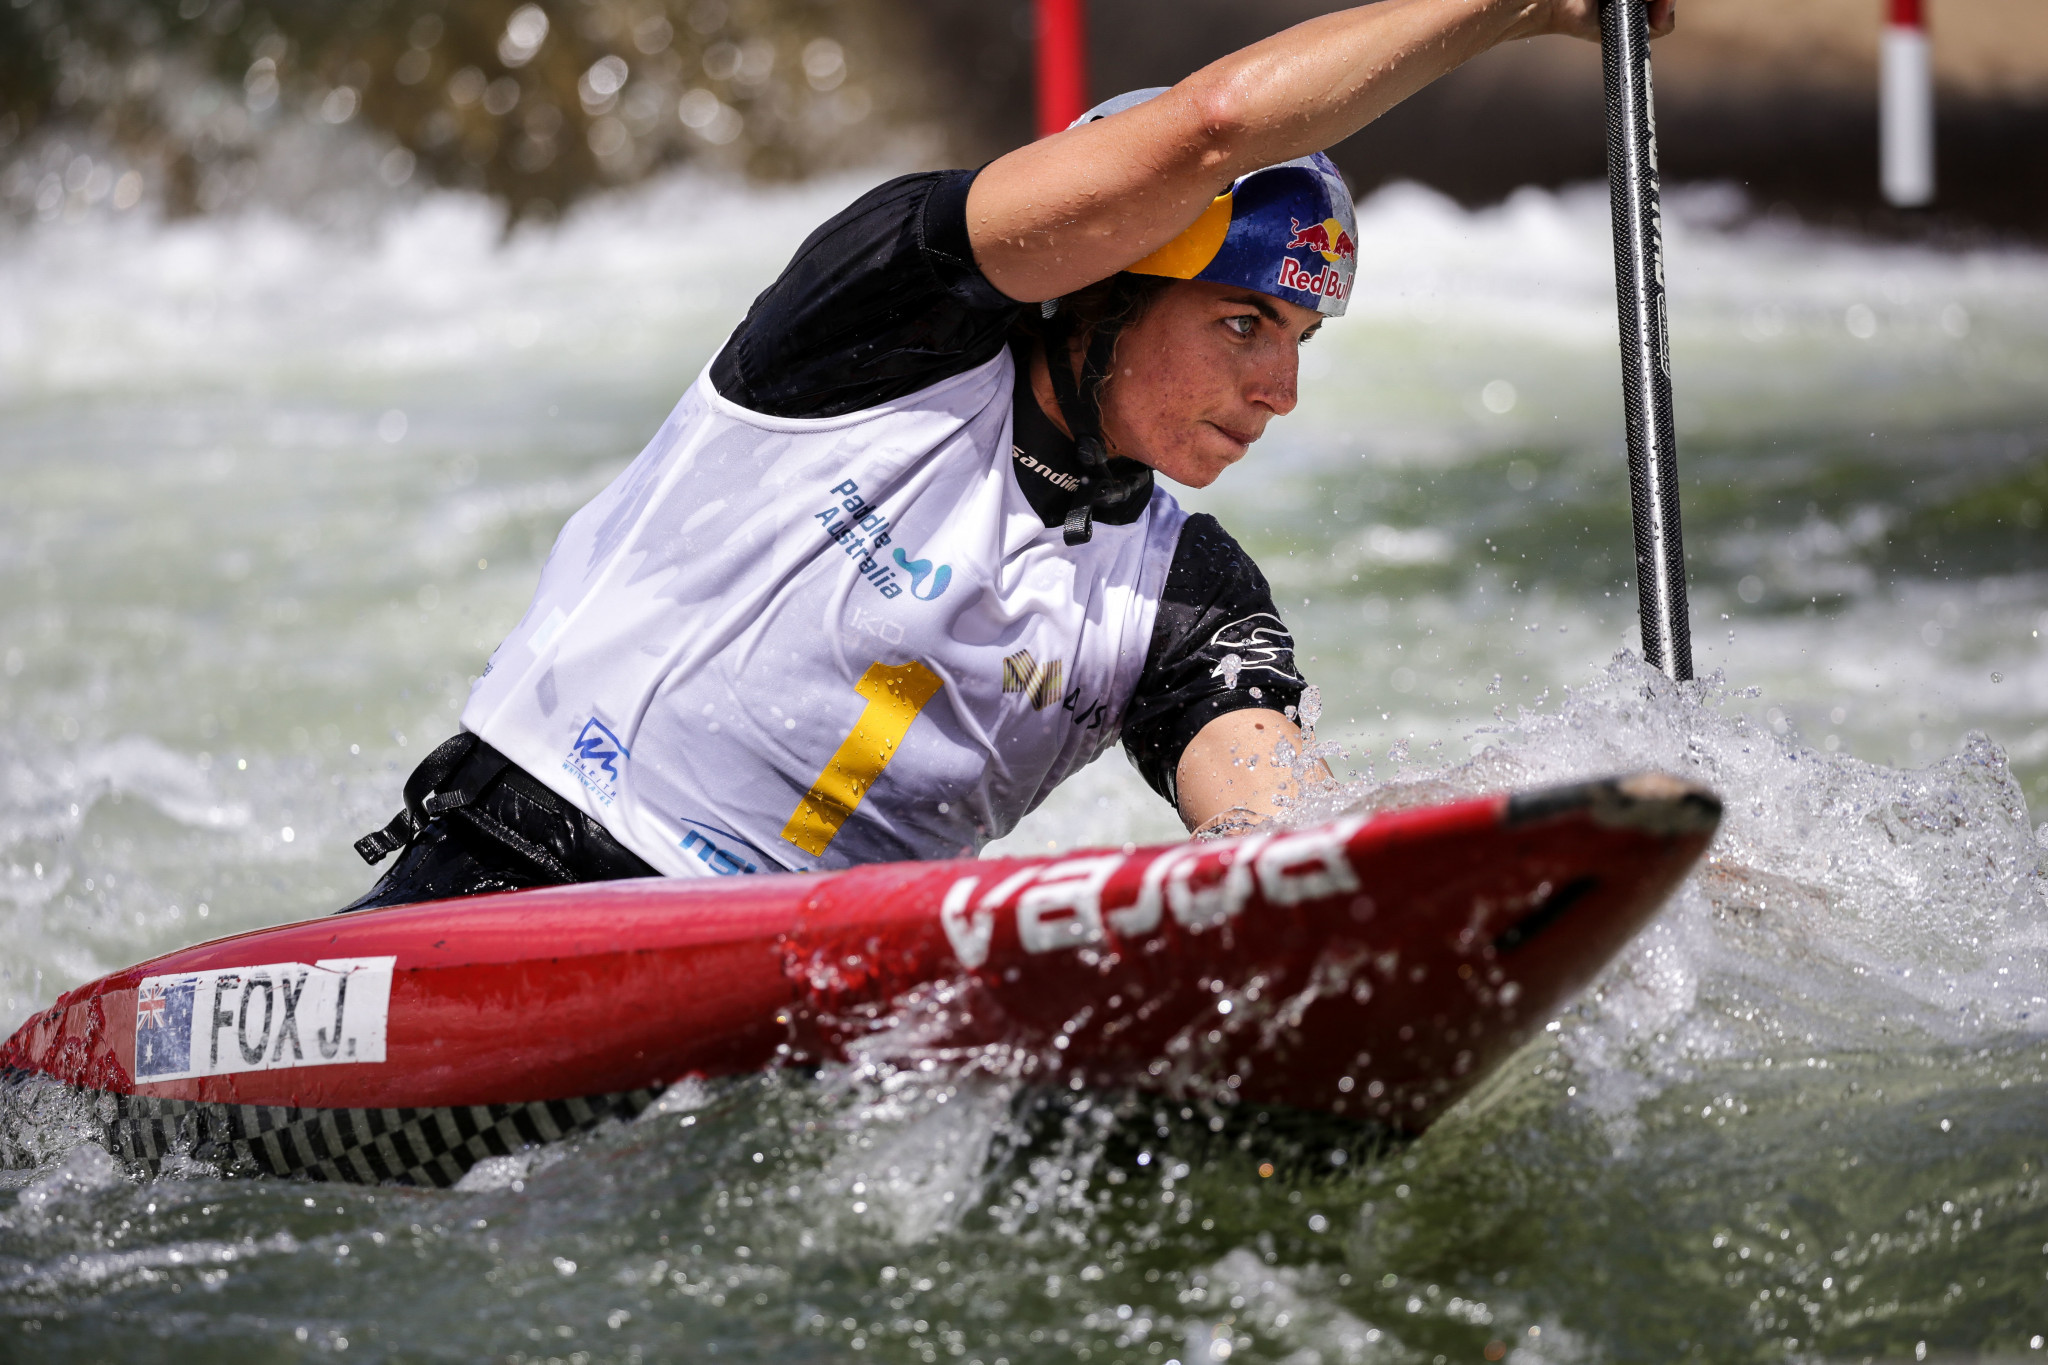 World champion Fox dominates qualifying in front of home crowd at Oceania Canoe Slalom Championships